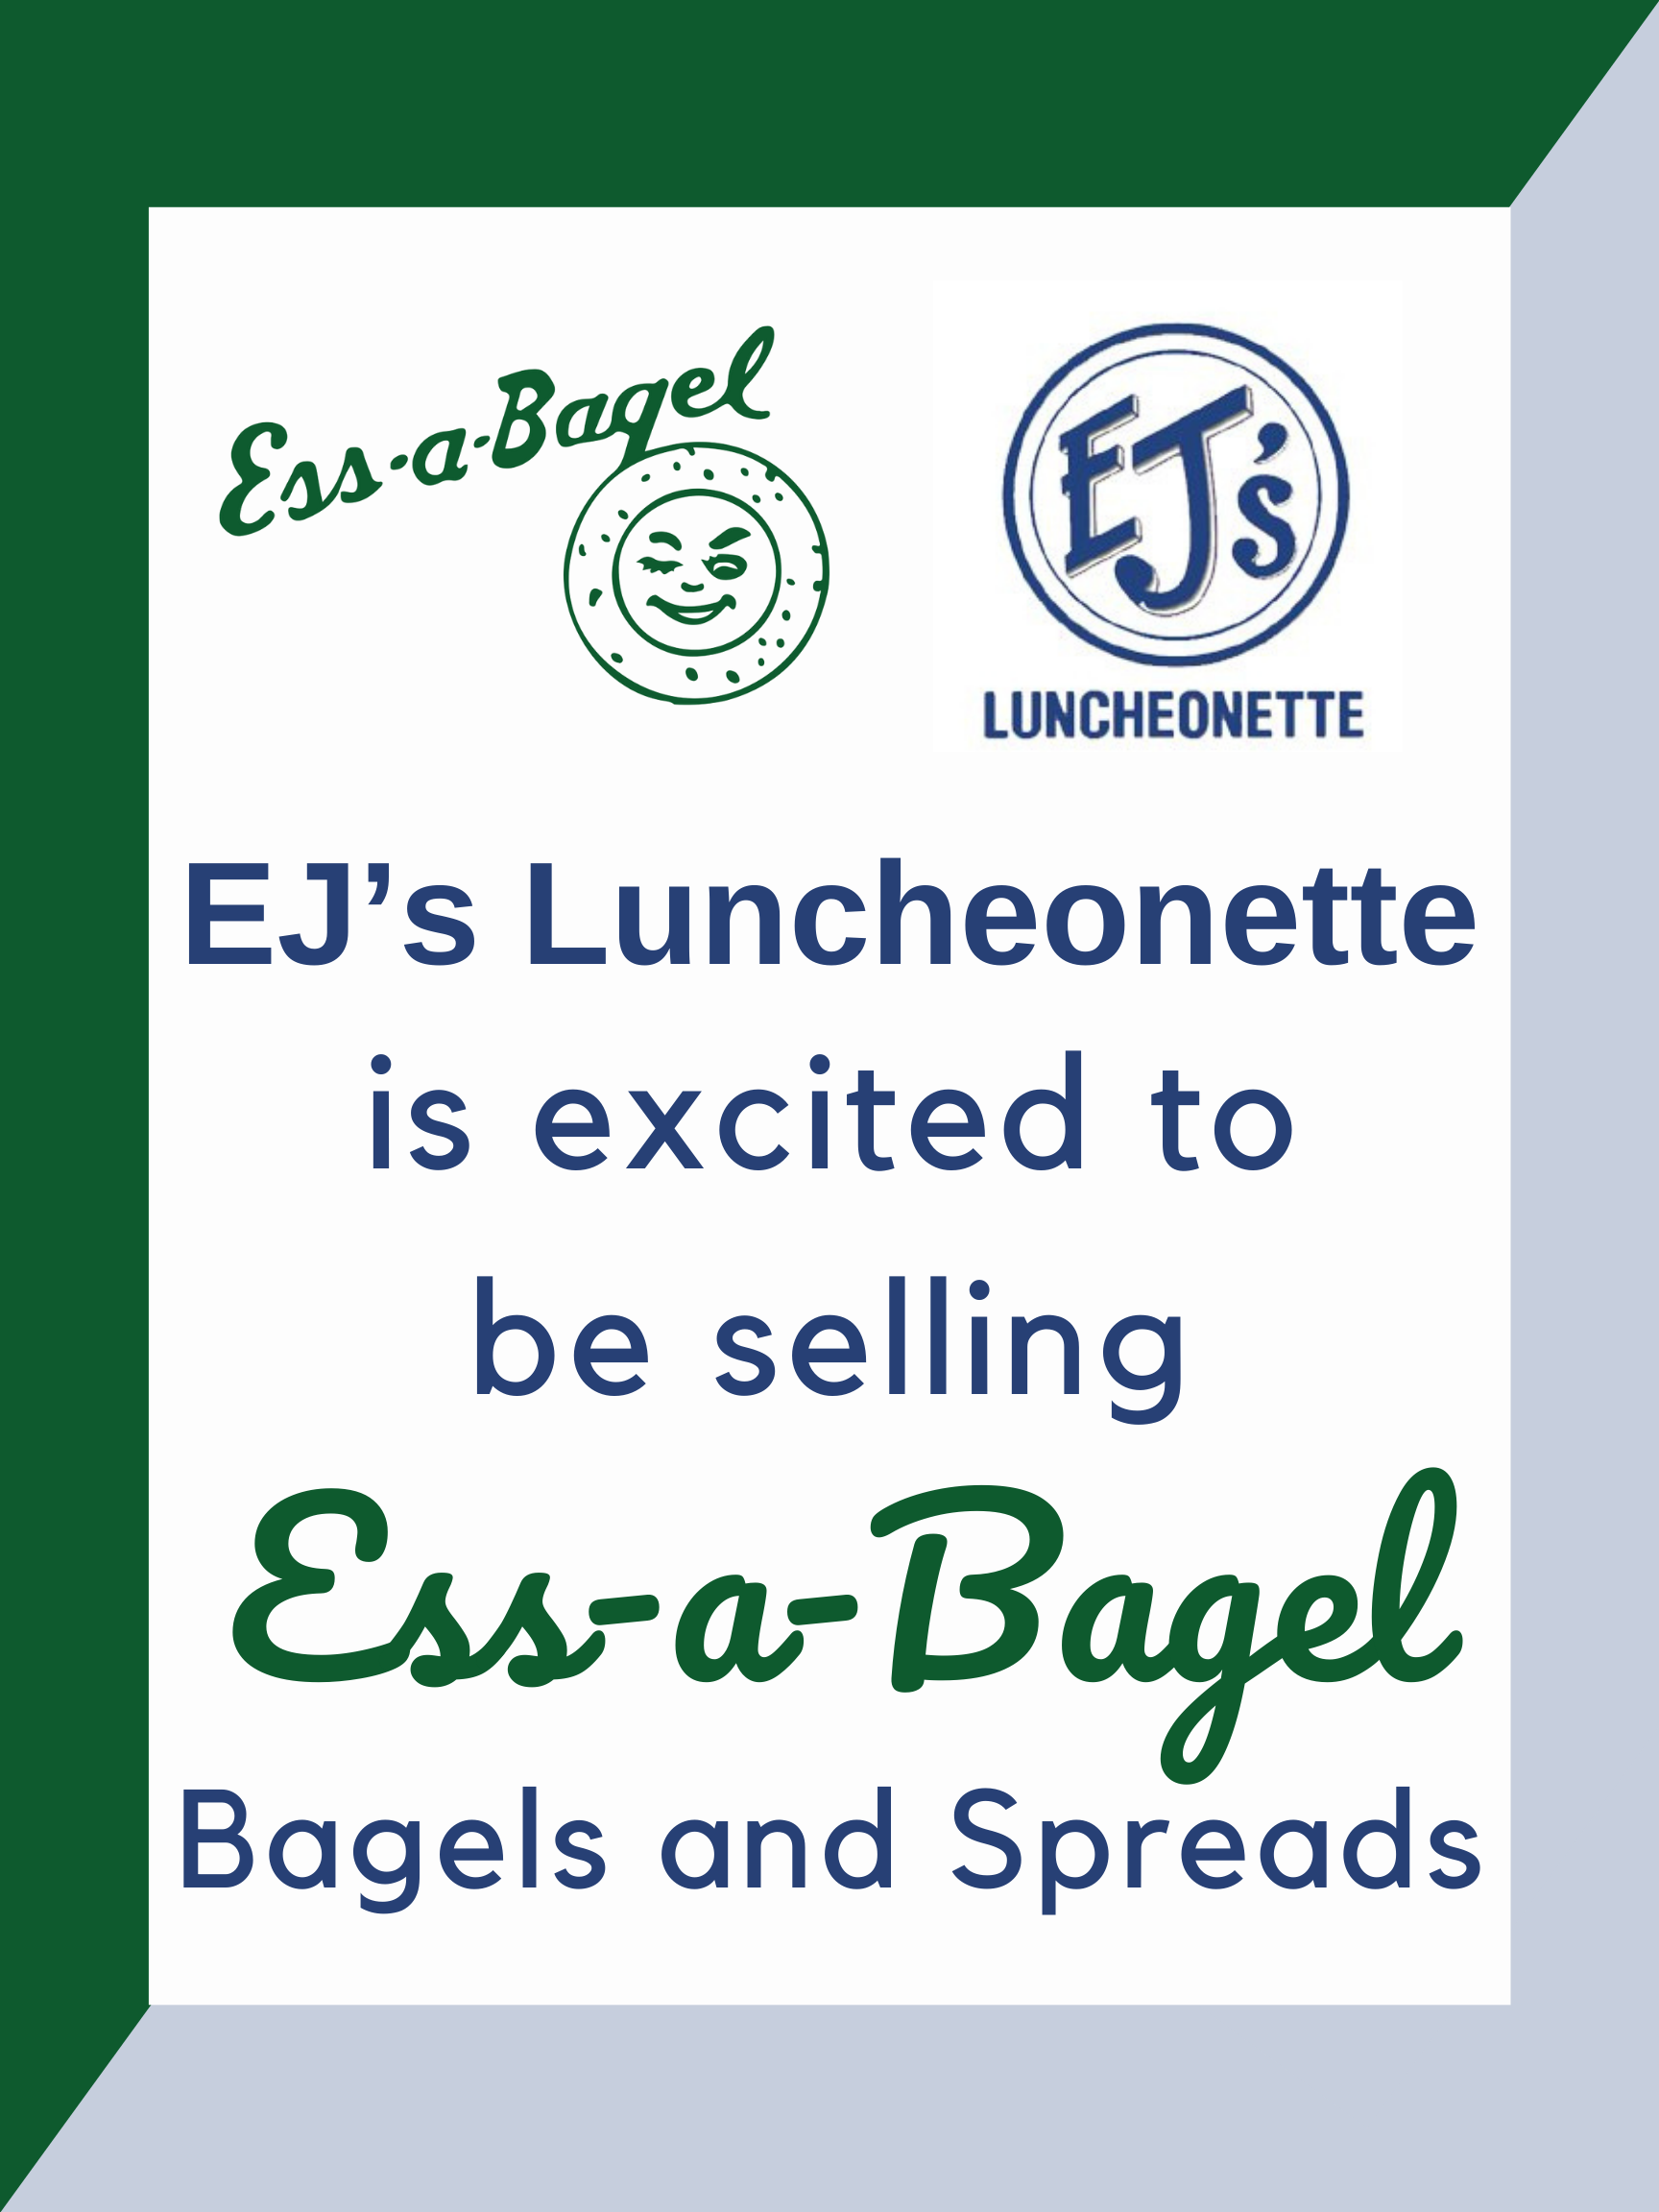 EJ's and Ess-A-Bagel